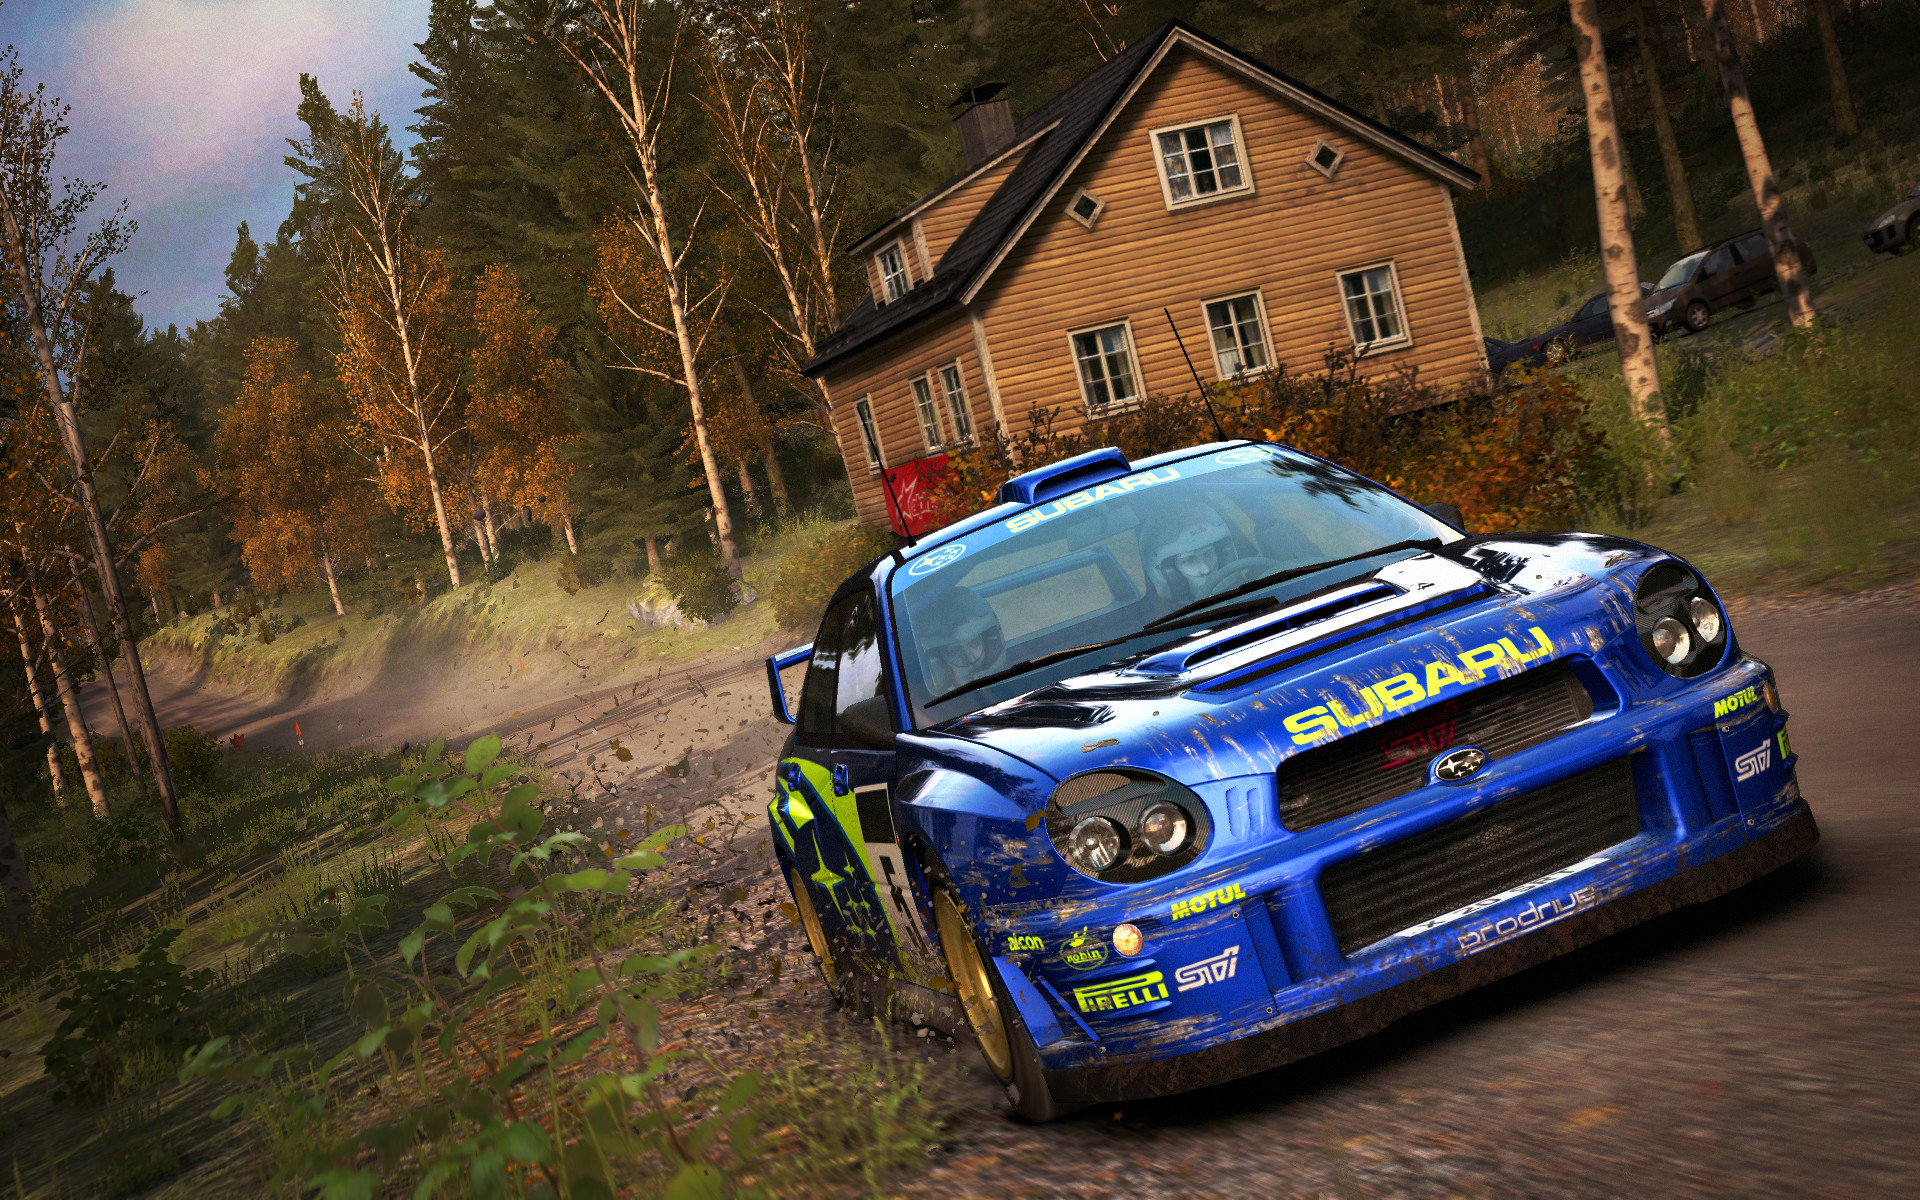 DiRT Rally (PC) - it's rally good (sorry)